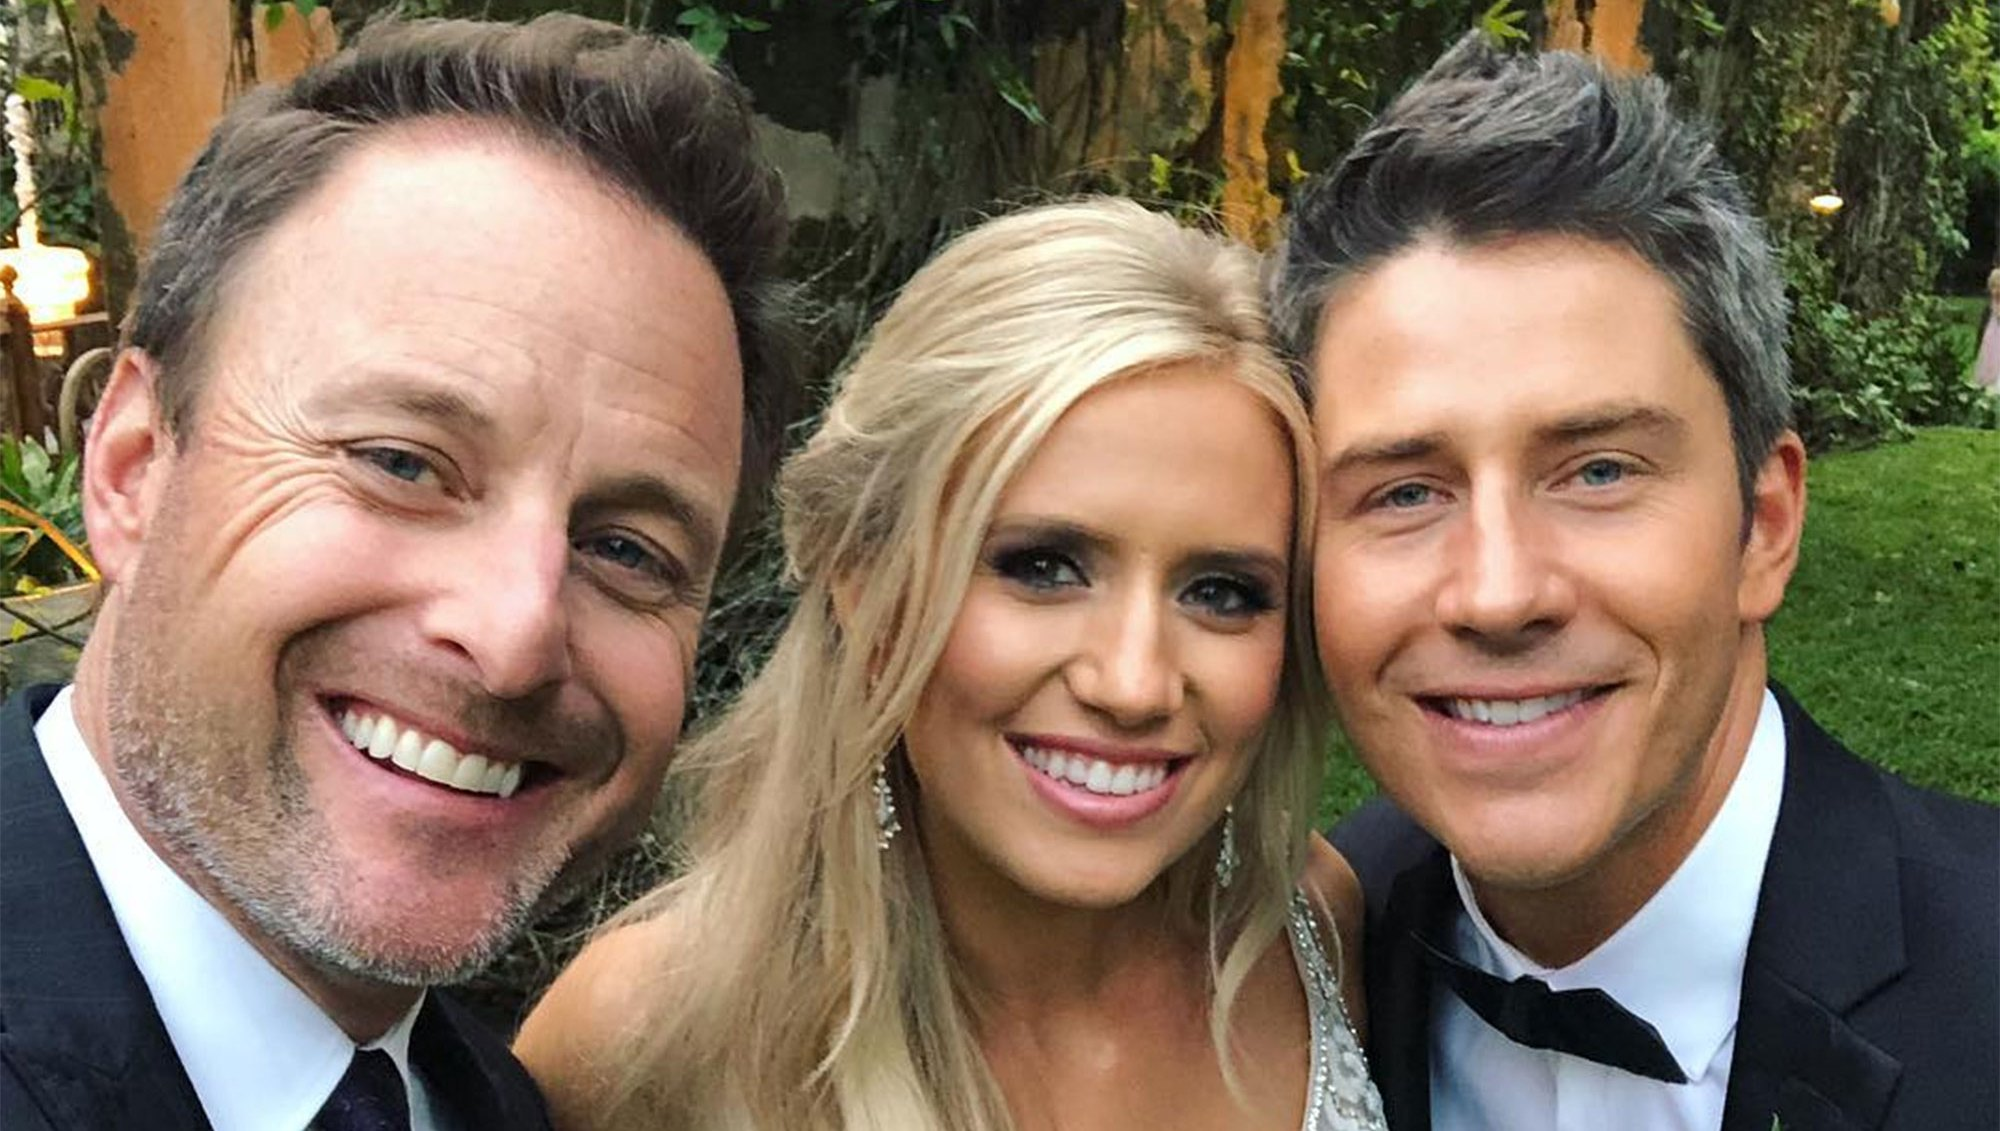 Inside Jokes, Tears and More: Chris Harrison Shares Details on Arie Luyendyk Jr. and Lauren Burnham's Nuptials